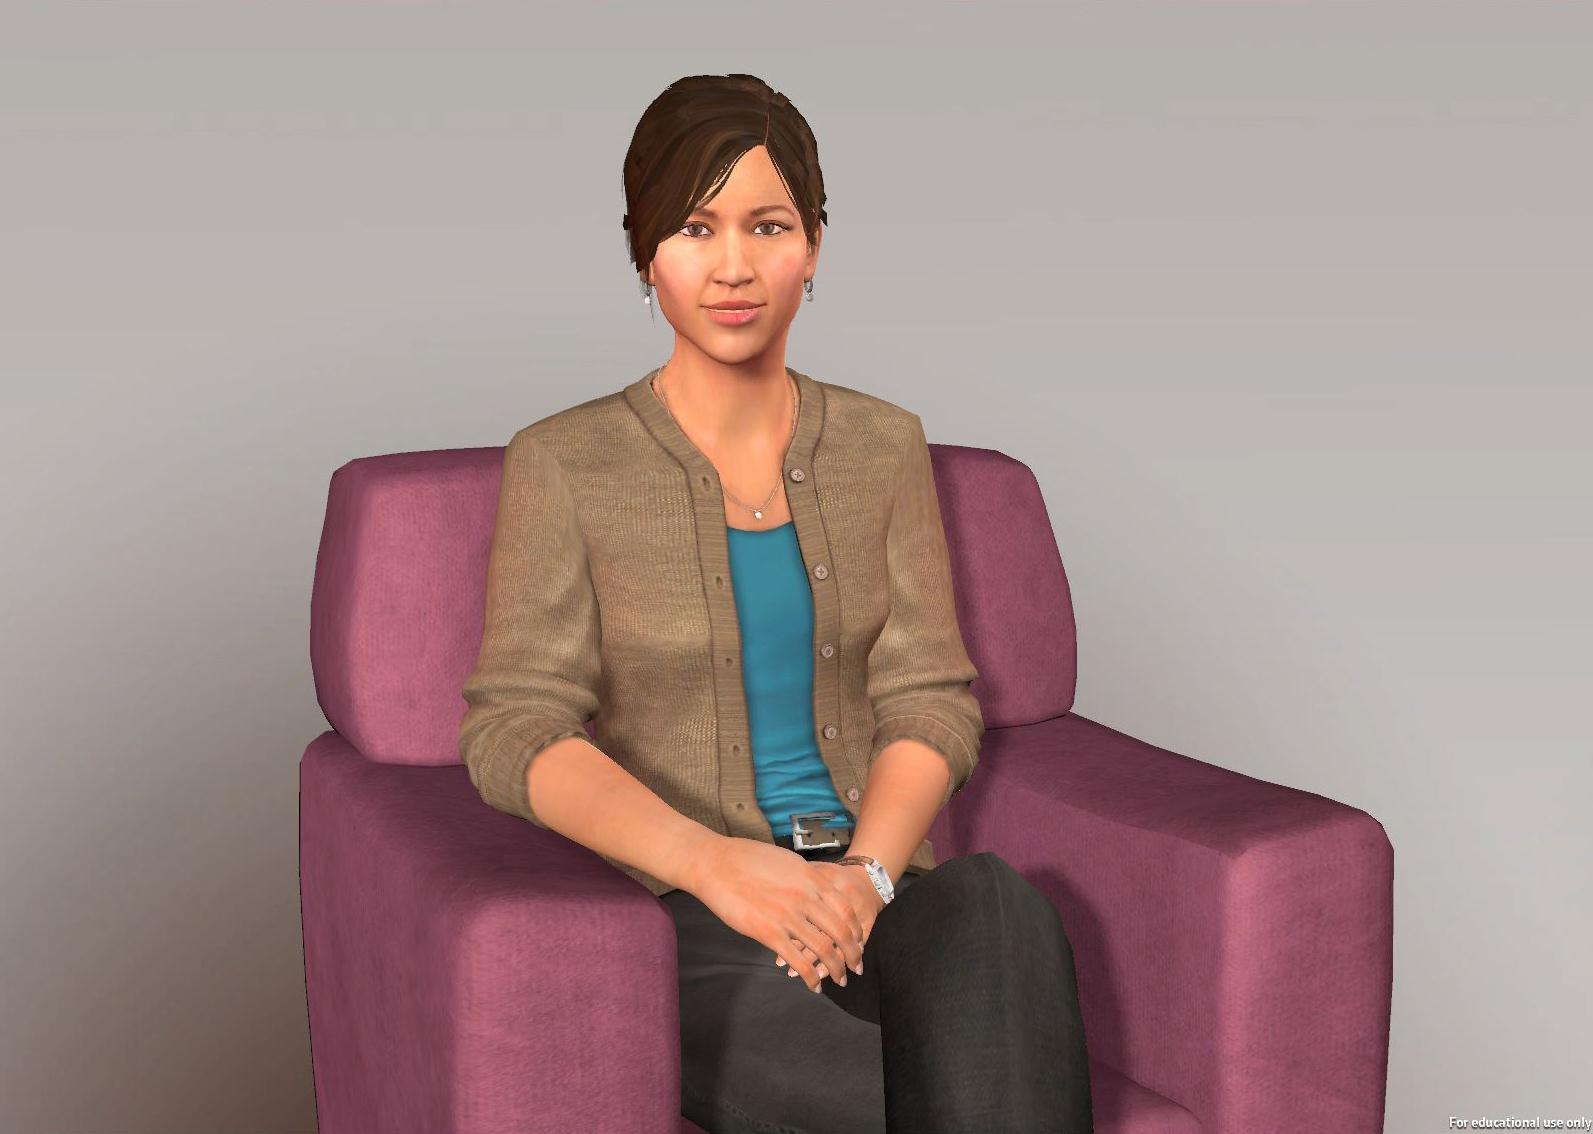 Ellie Virtual Therapist